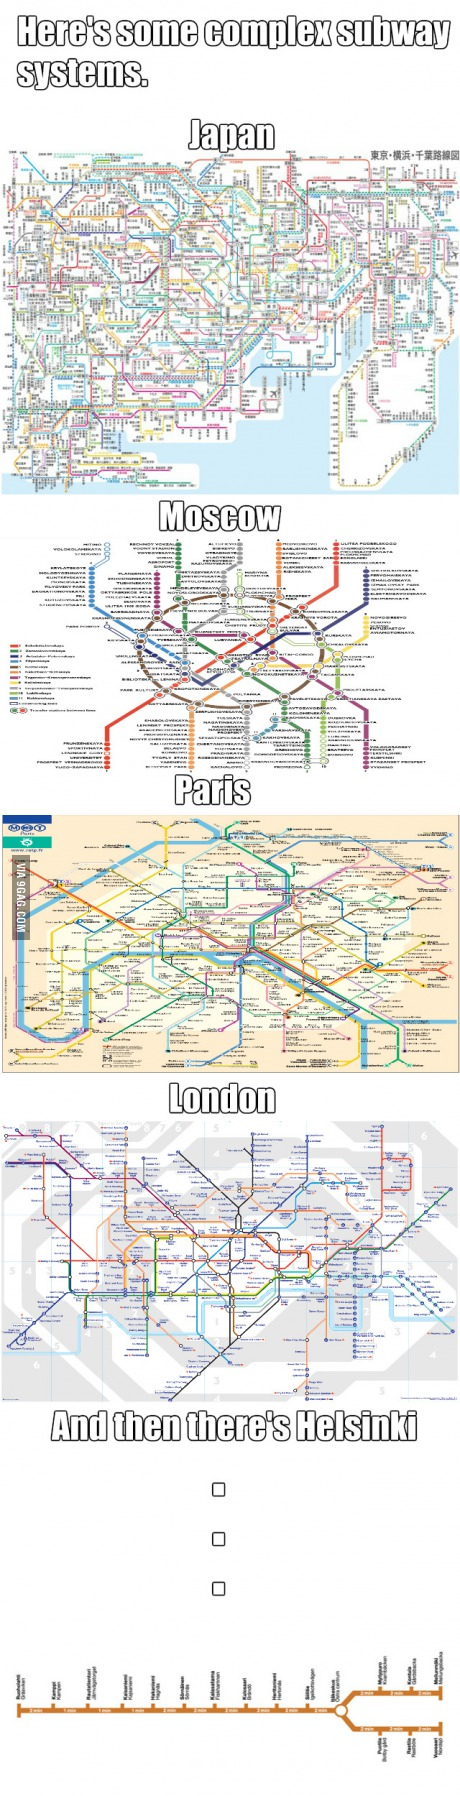 funny-picture-subway-countries-map